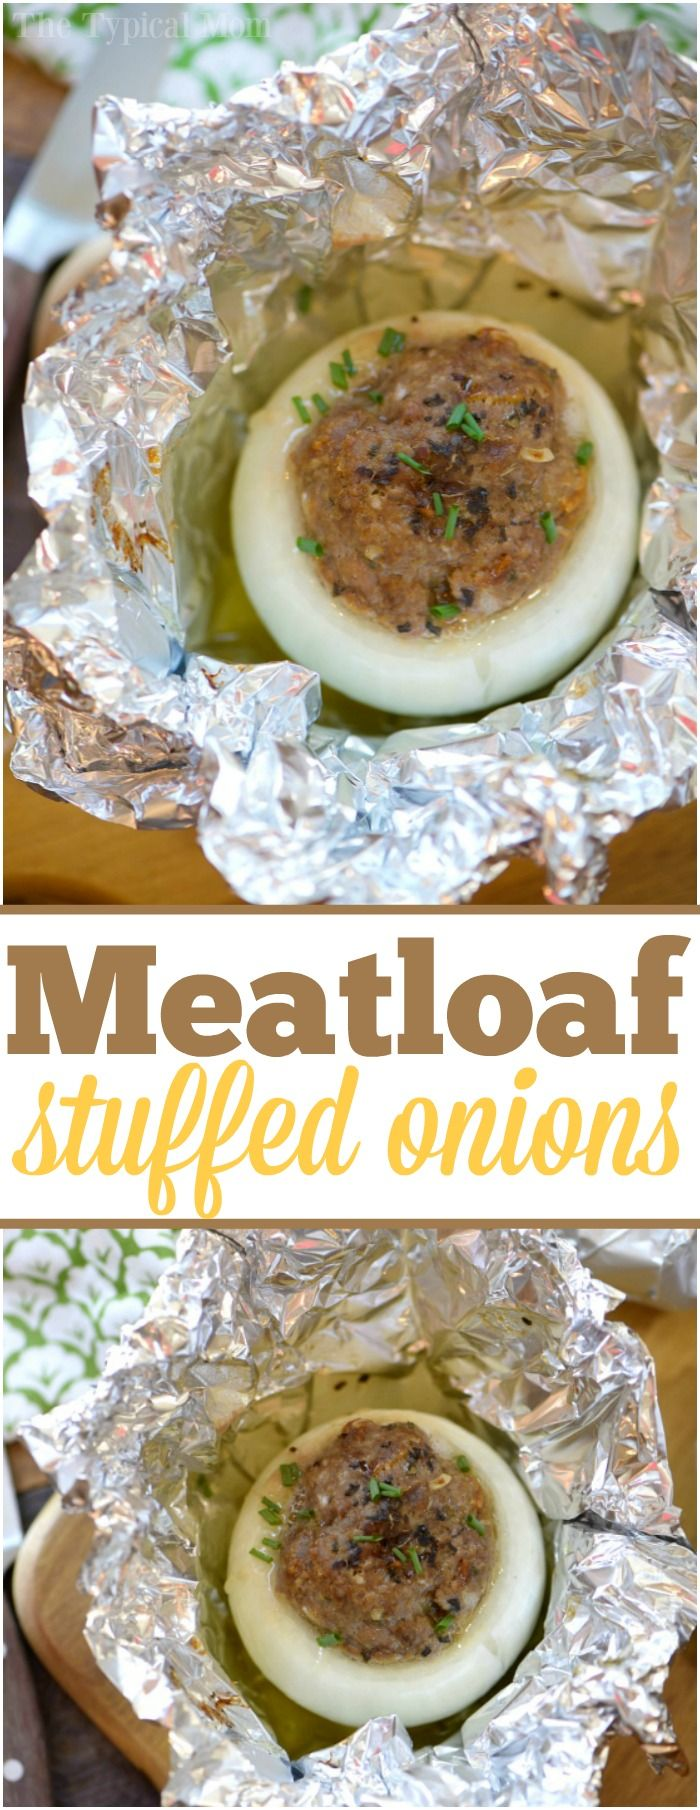 Have you ever grilled or baked a batch of meatloaf stuffed onions? They are so easy and come out really flavorful in your own little onion bowl. via @thetypicalmom